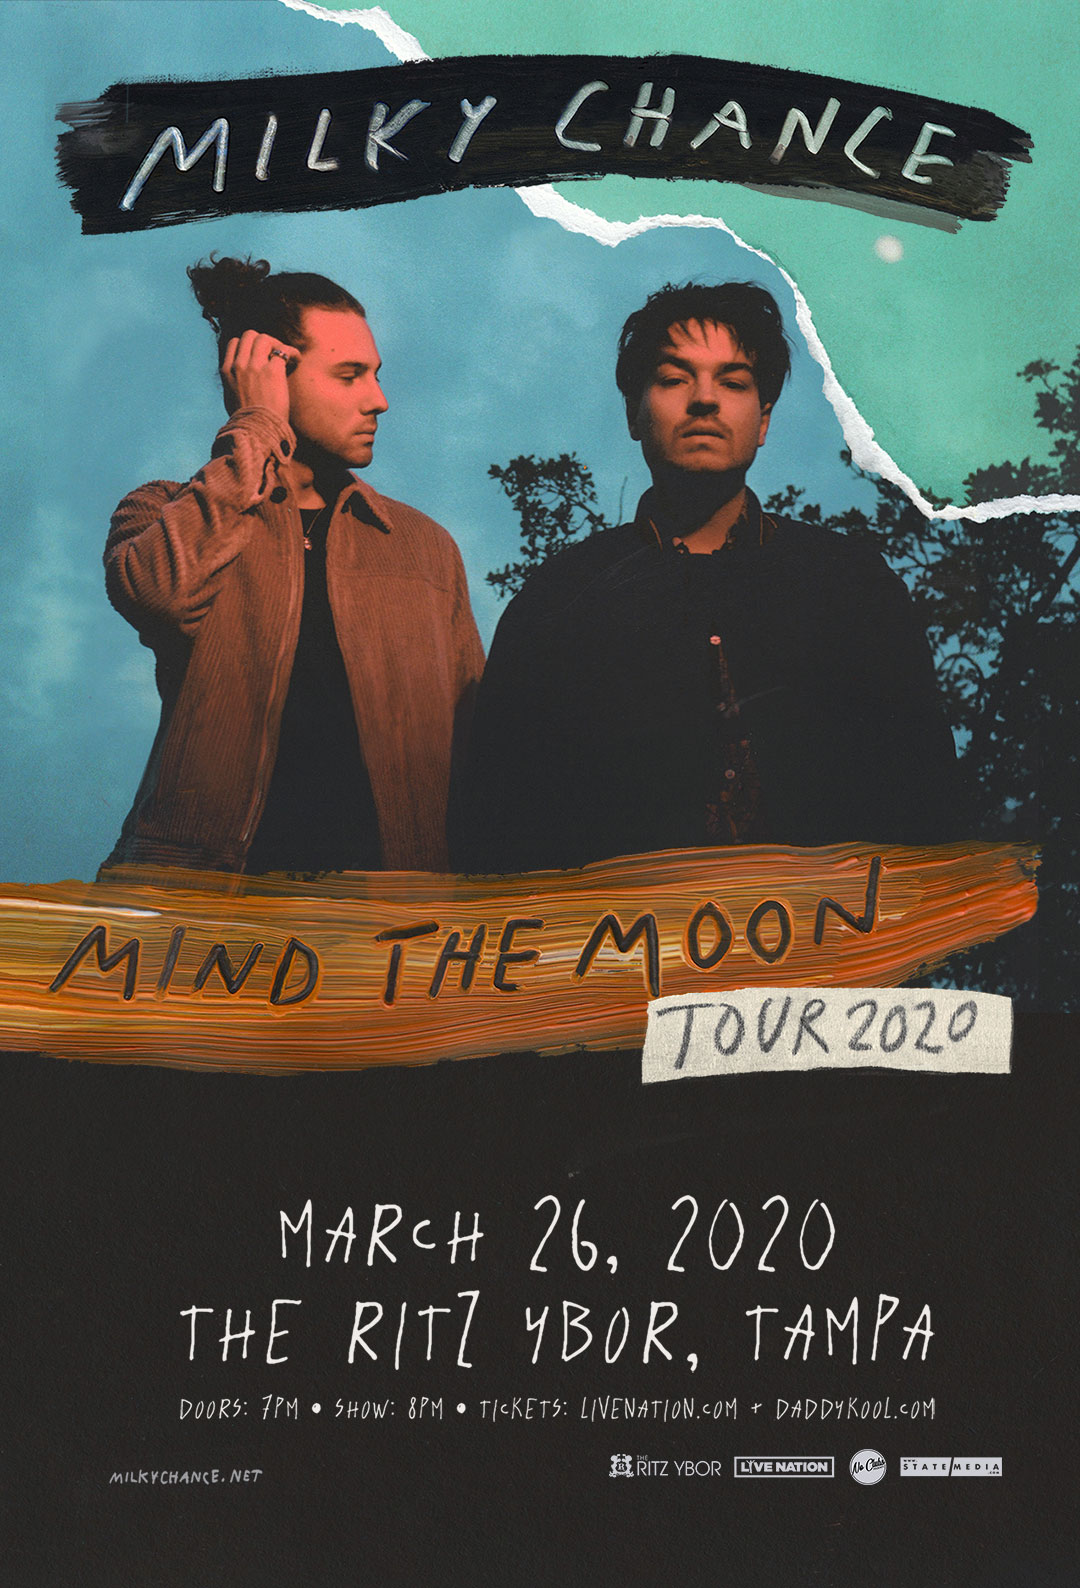 Milky Chance – Mind The Moon Tour 2020 at The RITZ Ybor – 10/25/2020